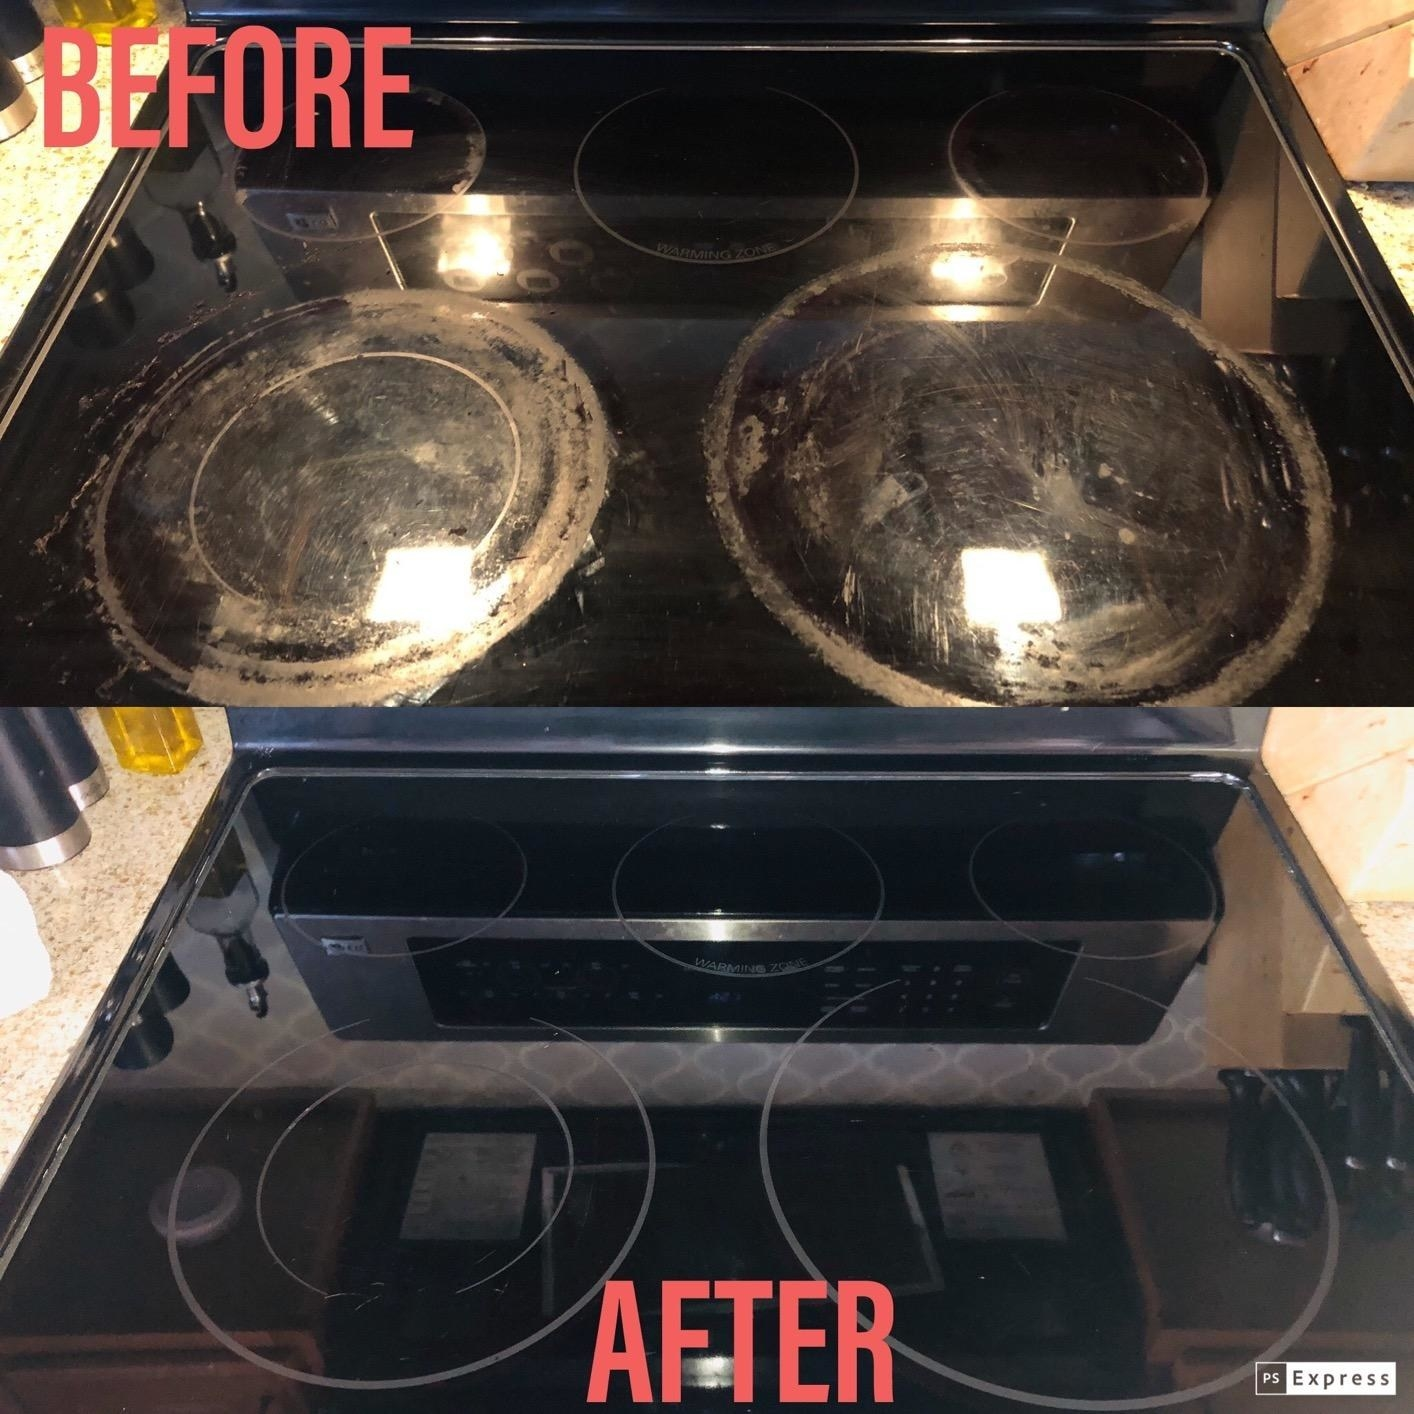 A before and after review photo of a dingy corroded-looking, and then clean electric cooktop